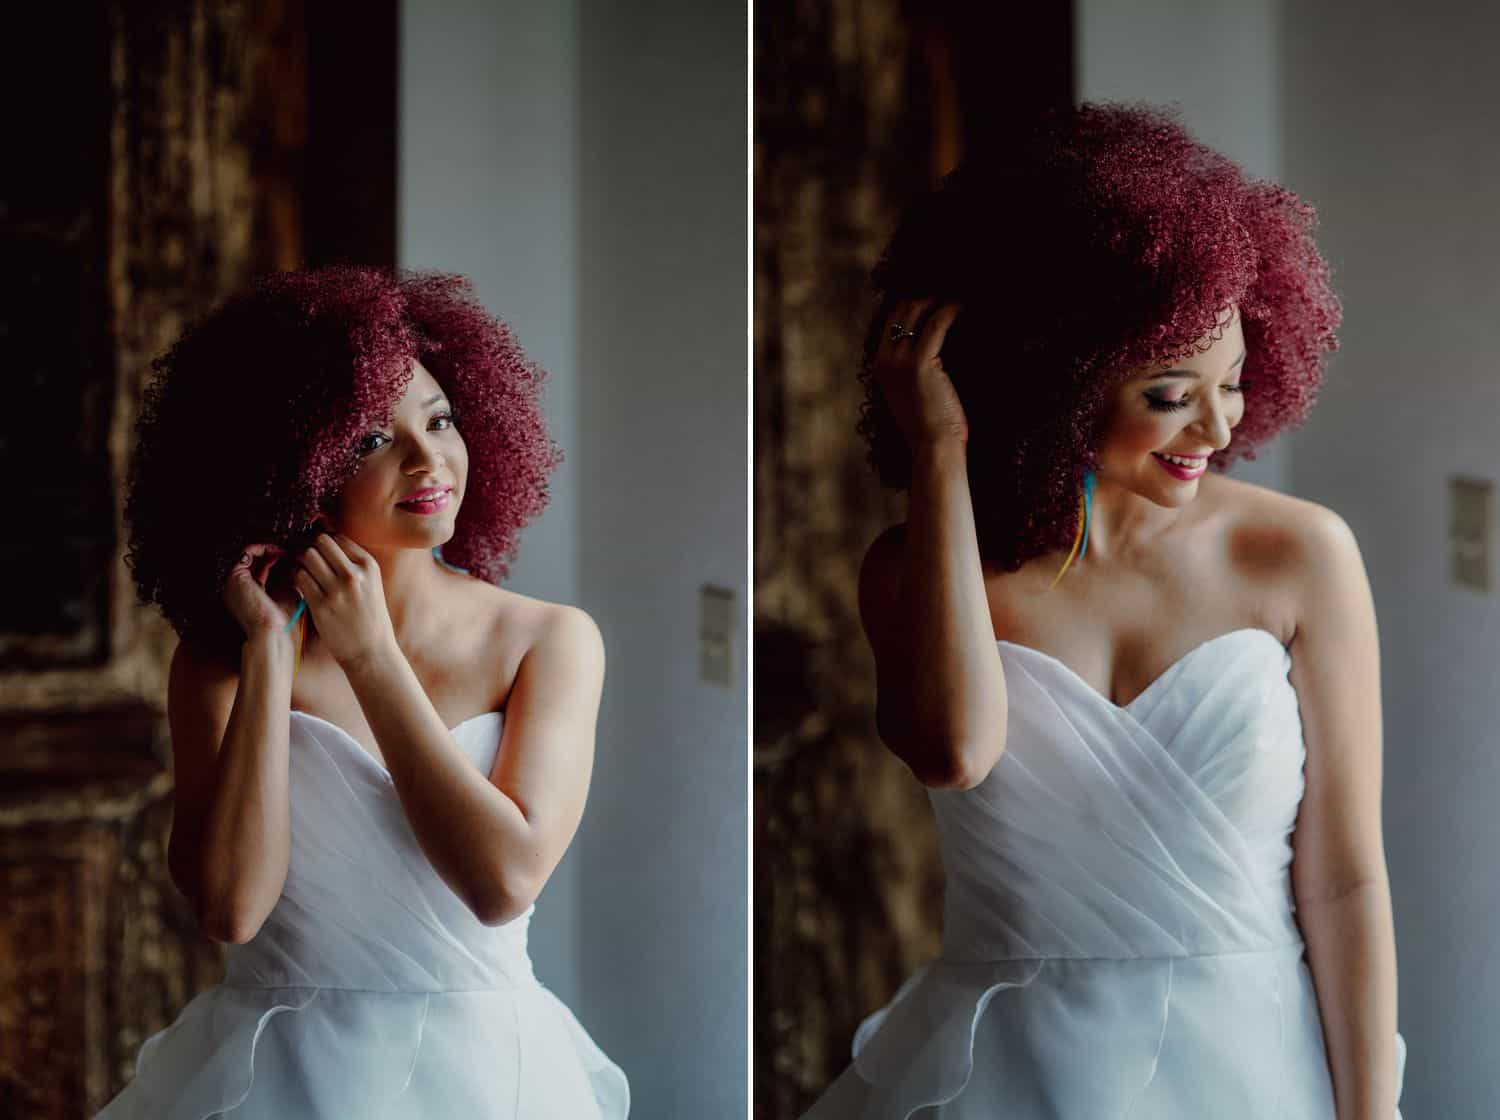 A Black bride with hot pink hair poses for a portrait while getting ready for her wedding